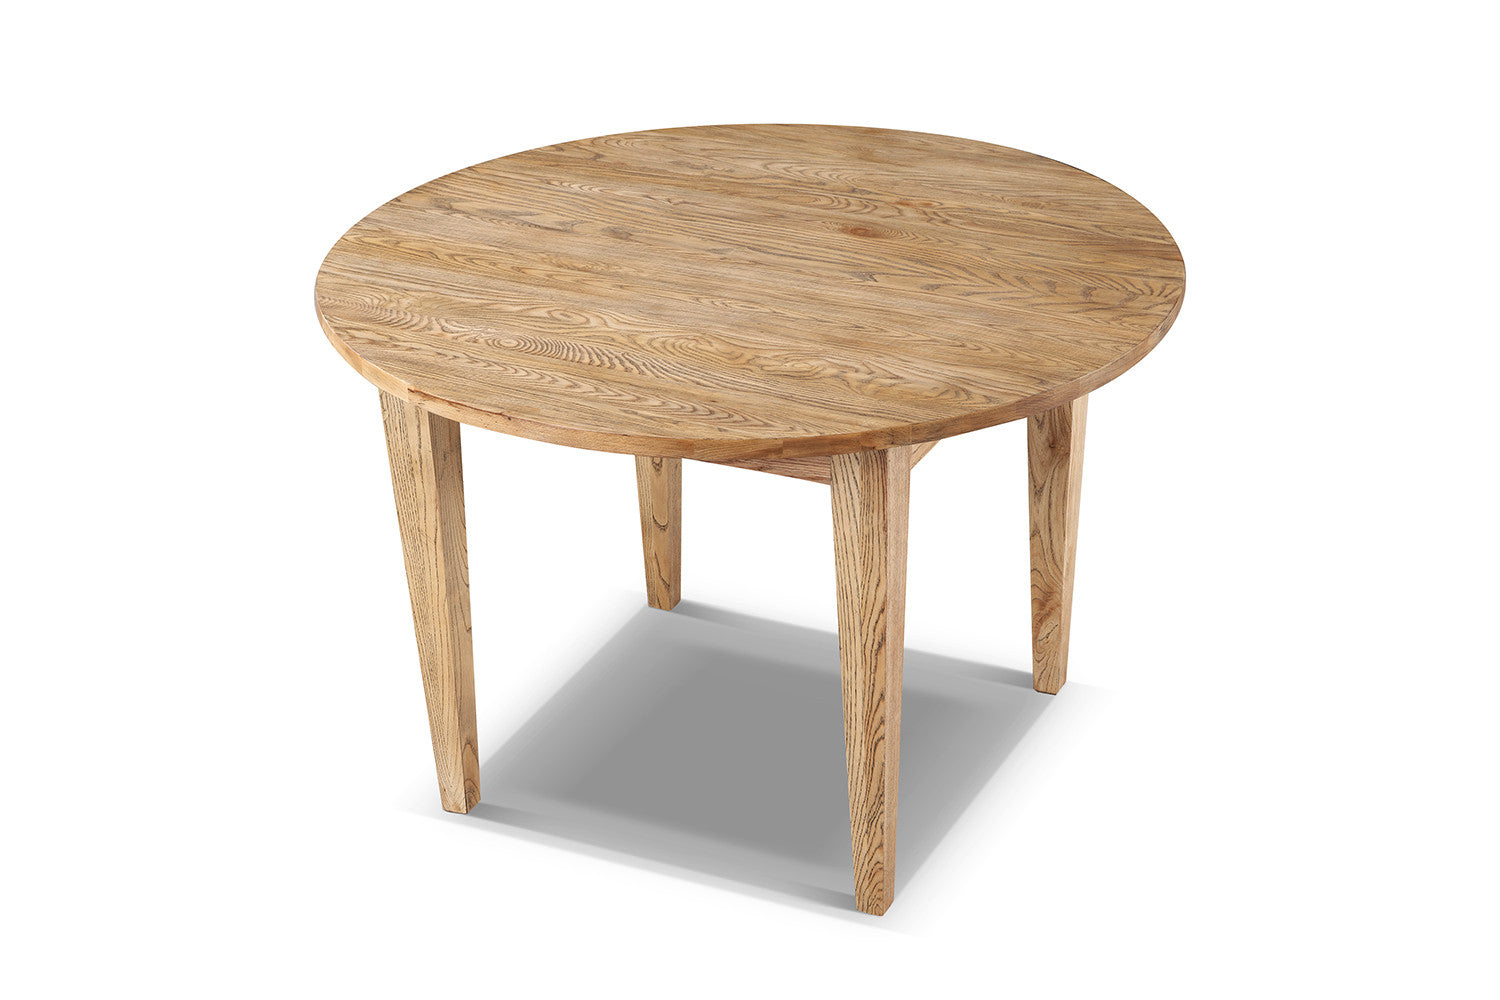 Table de cuisine cottage ronde en bois rose moore for Table a manger ronde bois